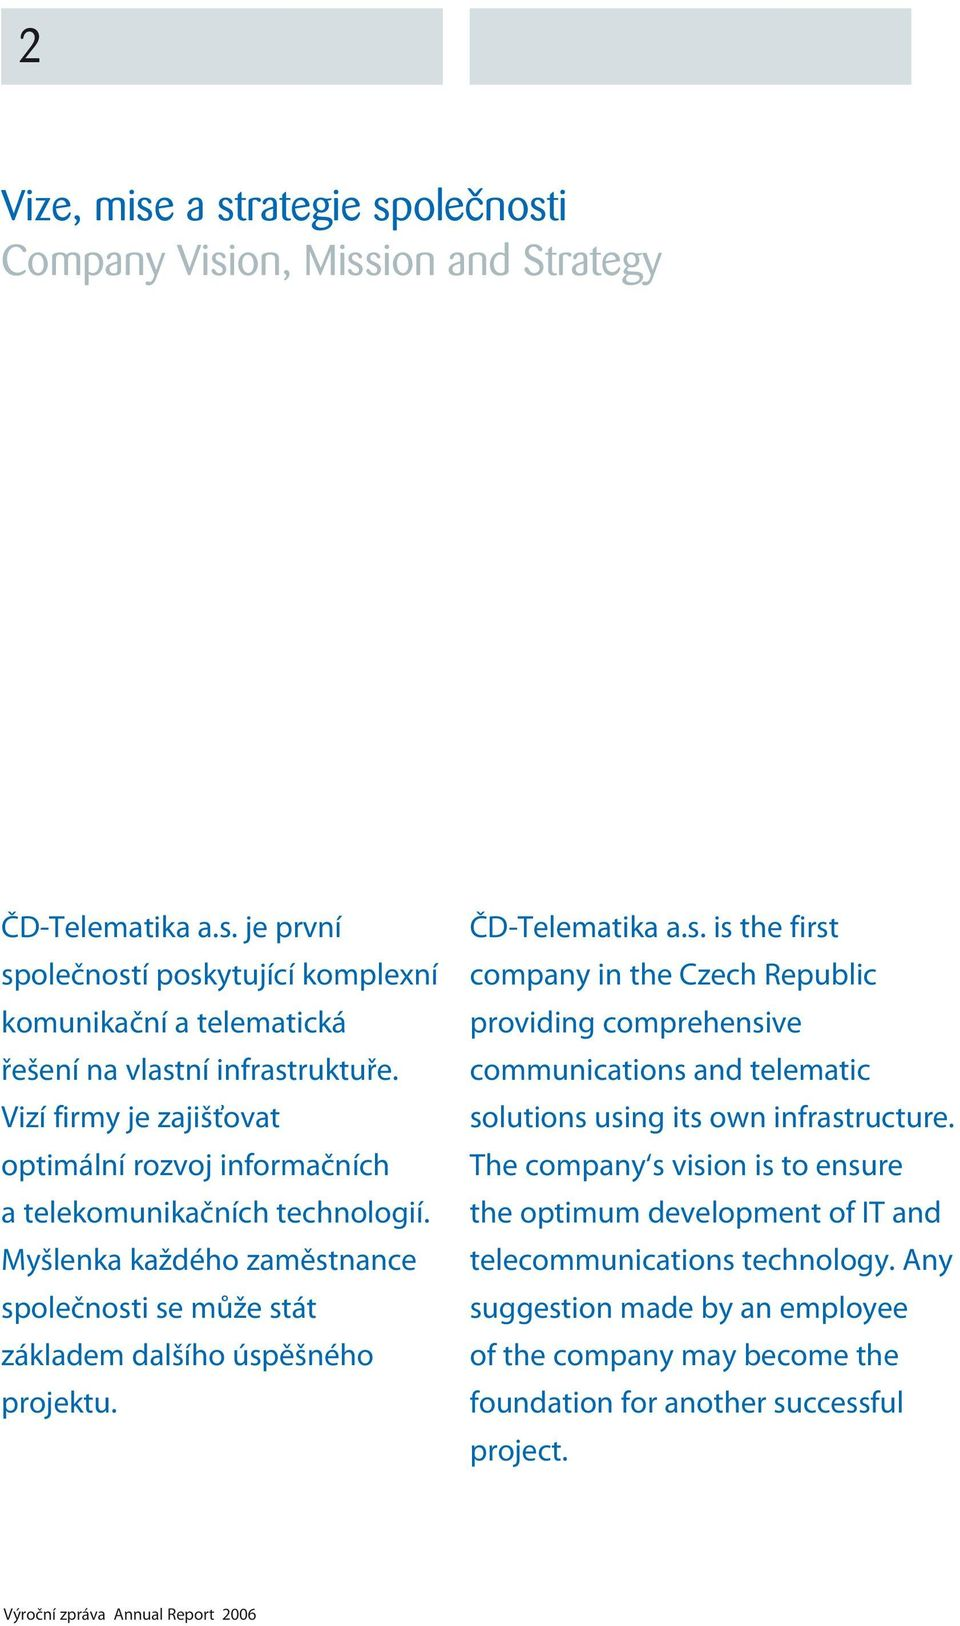 ČD-Telematika a.s. is the first company in the Czech Republic providing comprehensive communications and telematic solutions using its own infrastructure.